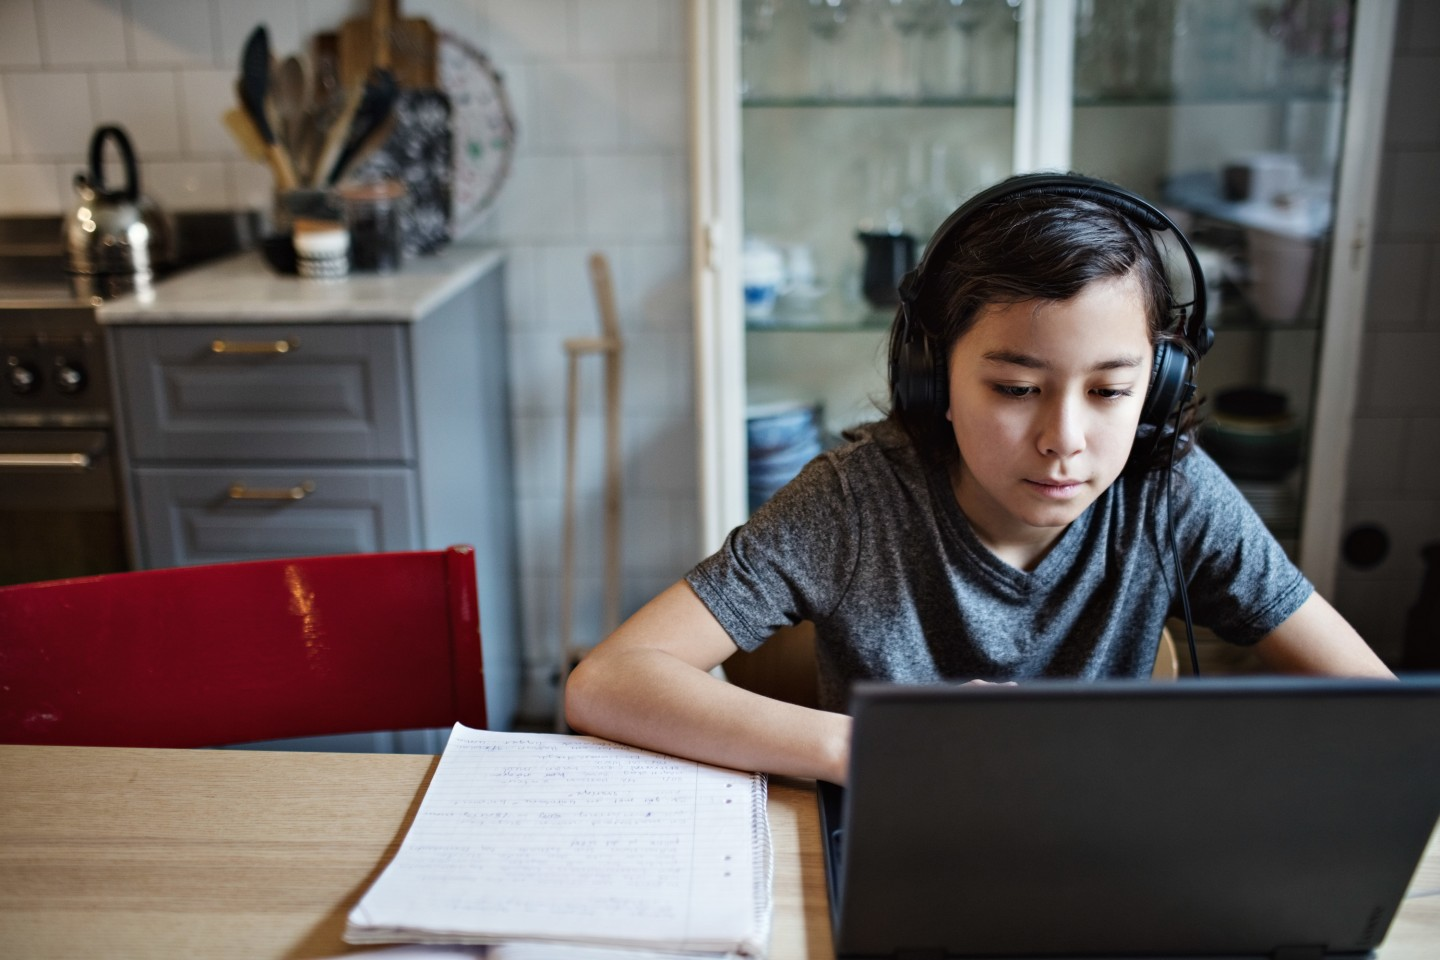 A child wears headphones as they sit at their laptop computer.